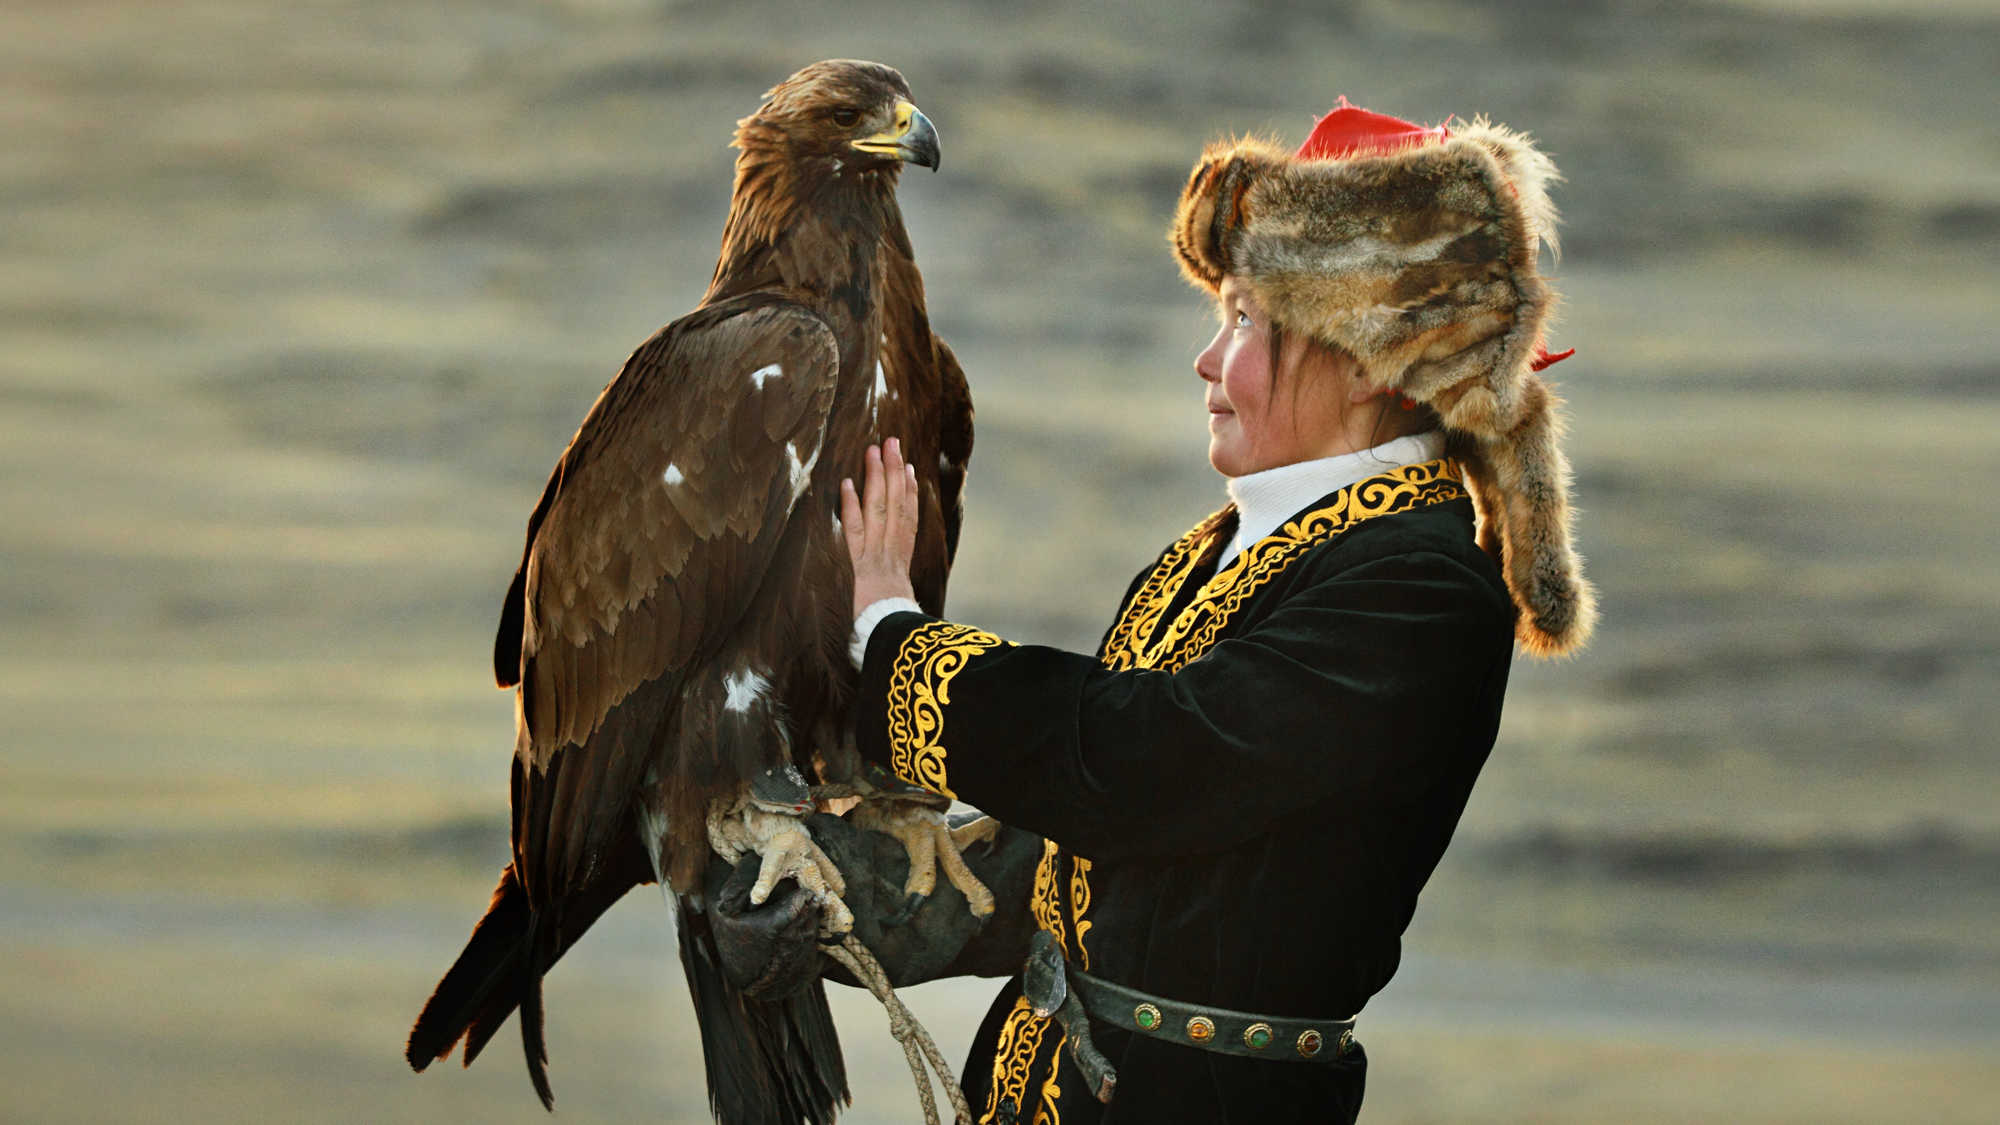 The Eagle Huntress (image 3)